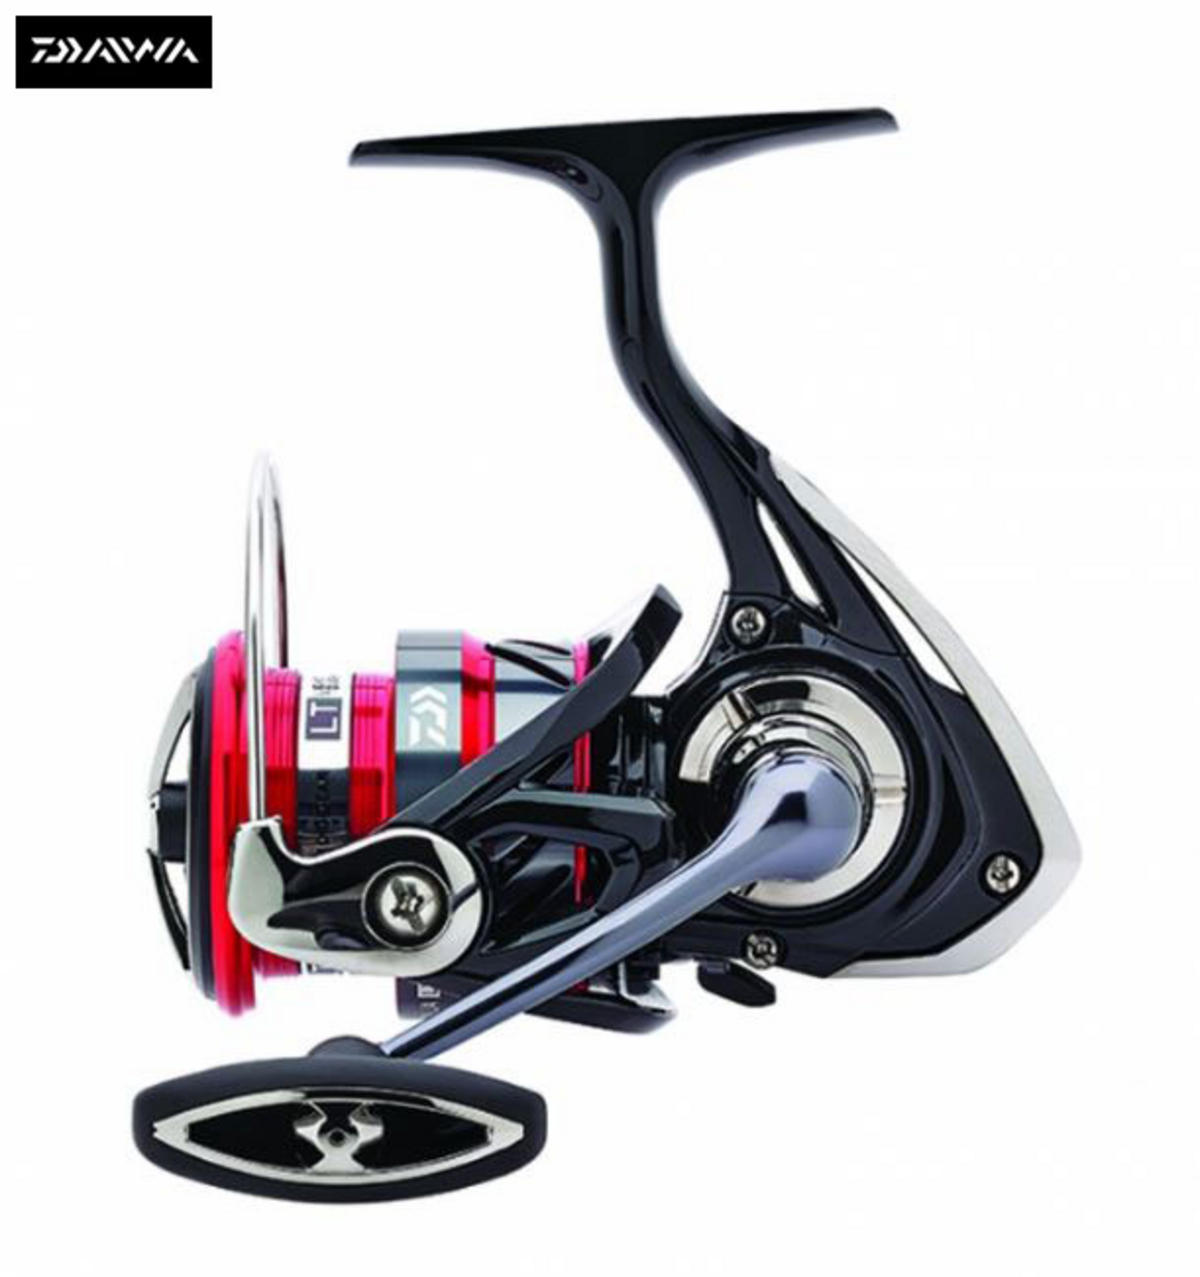 Ex Display Daiwa 18 Ninja LT (Light & Tough) Spinning Fishing Reel - LT2500